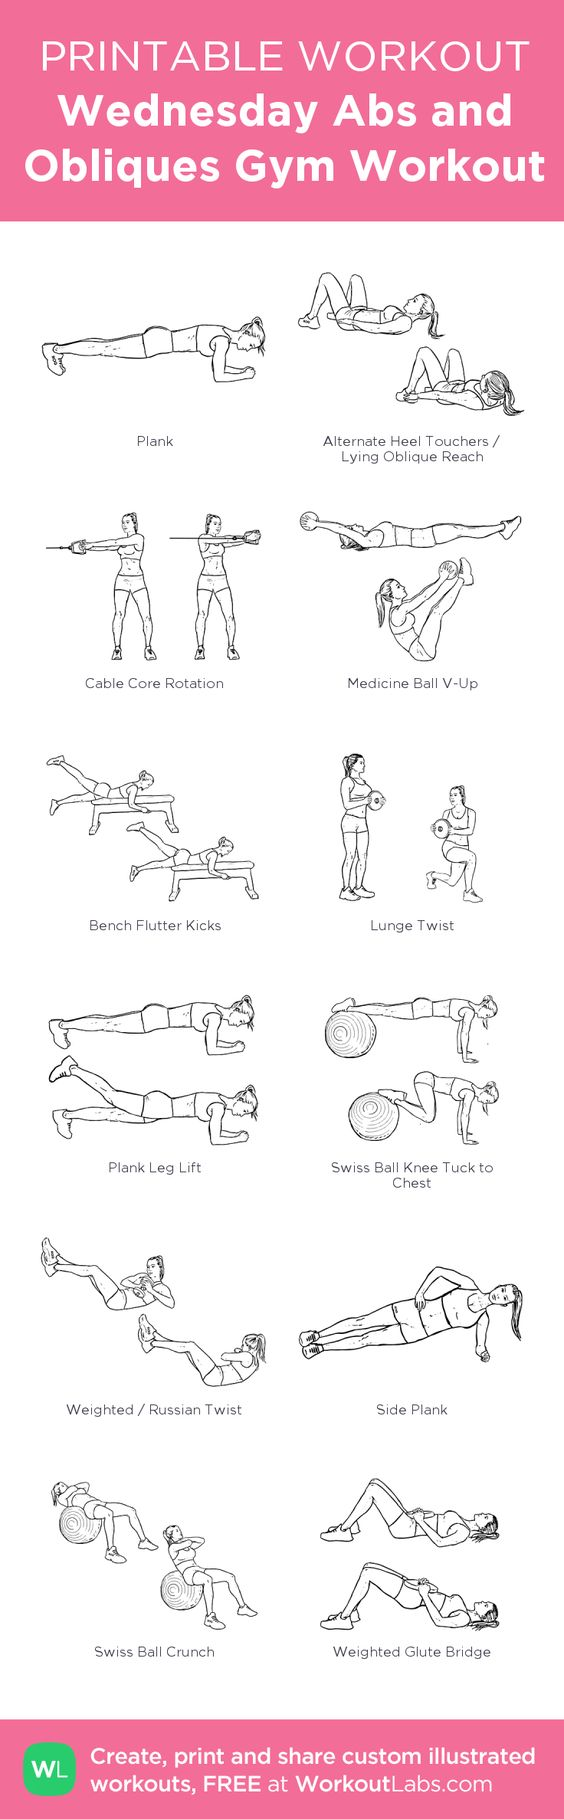 Wednesday Abs and Obliques Gym Workout:my visual workout created at WorkoutLabs.com • Click through to customize and download as a FREE PDF! #customworkout